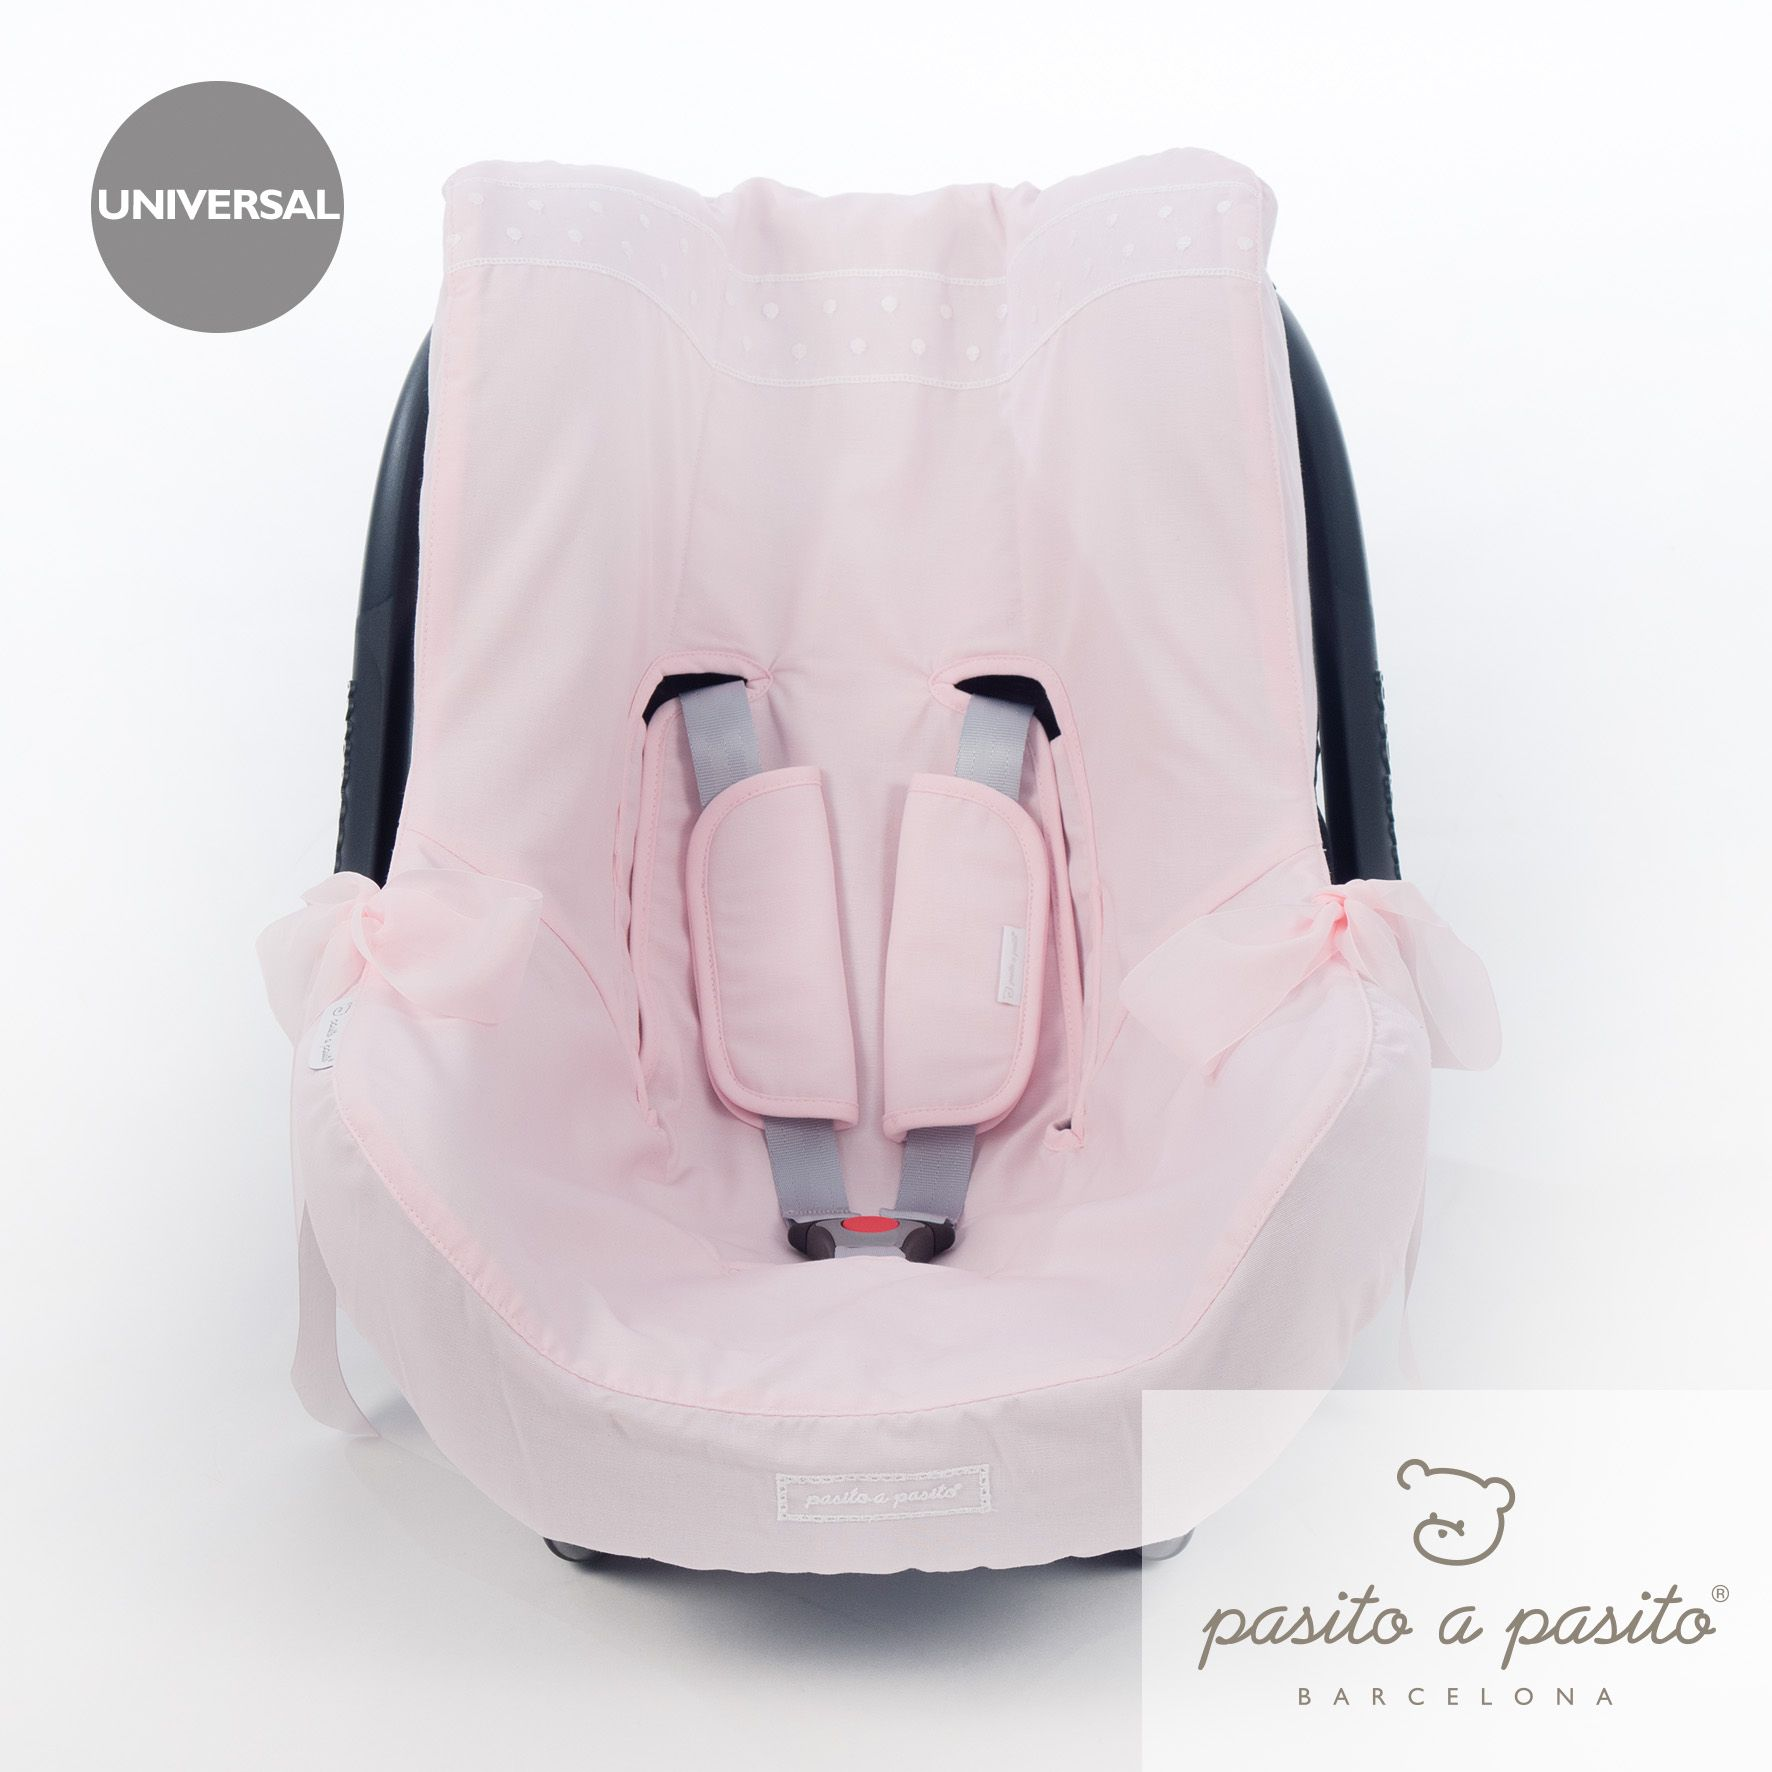 This Beautiful Universal Summer Car Seat Cover From Pasitoapasito Is Perfect To Keep Little Ones Cool And Comfortable During Warmer Months Carseatcover